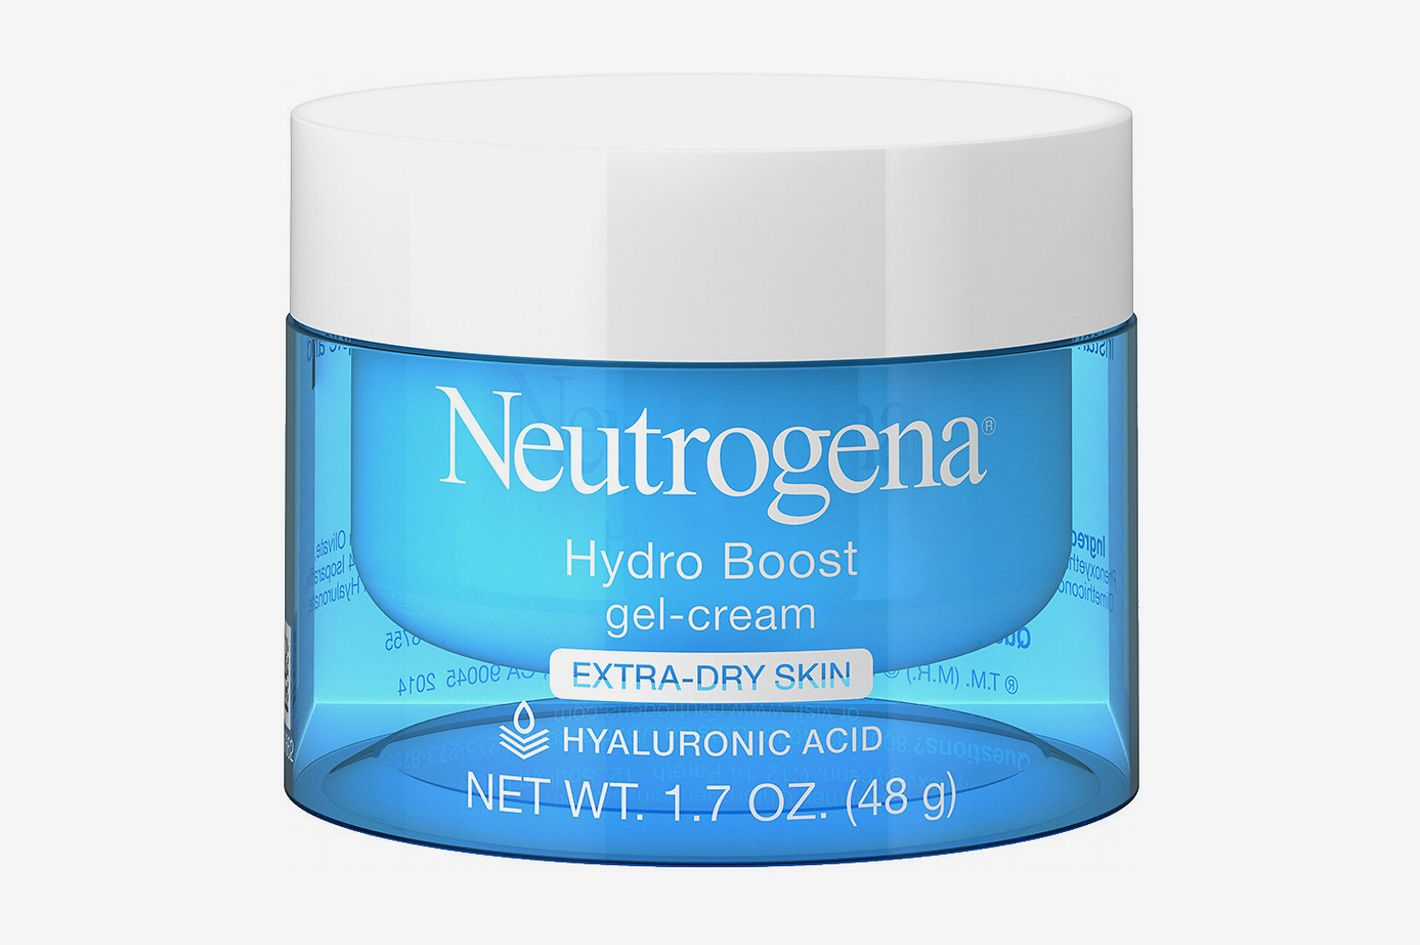 Neutrogena Hydro Boost Gel-Cream